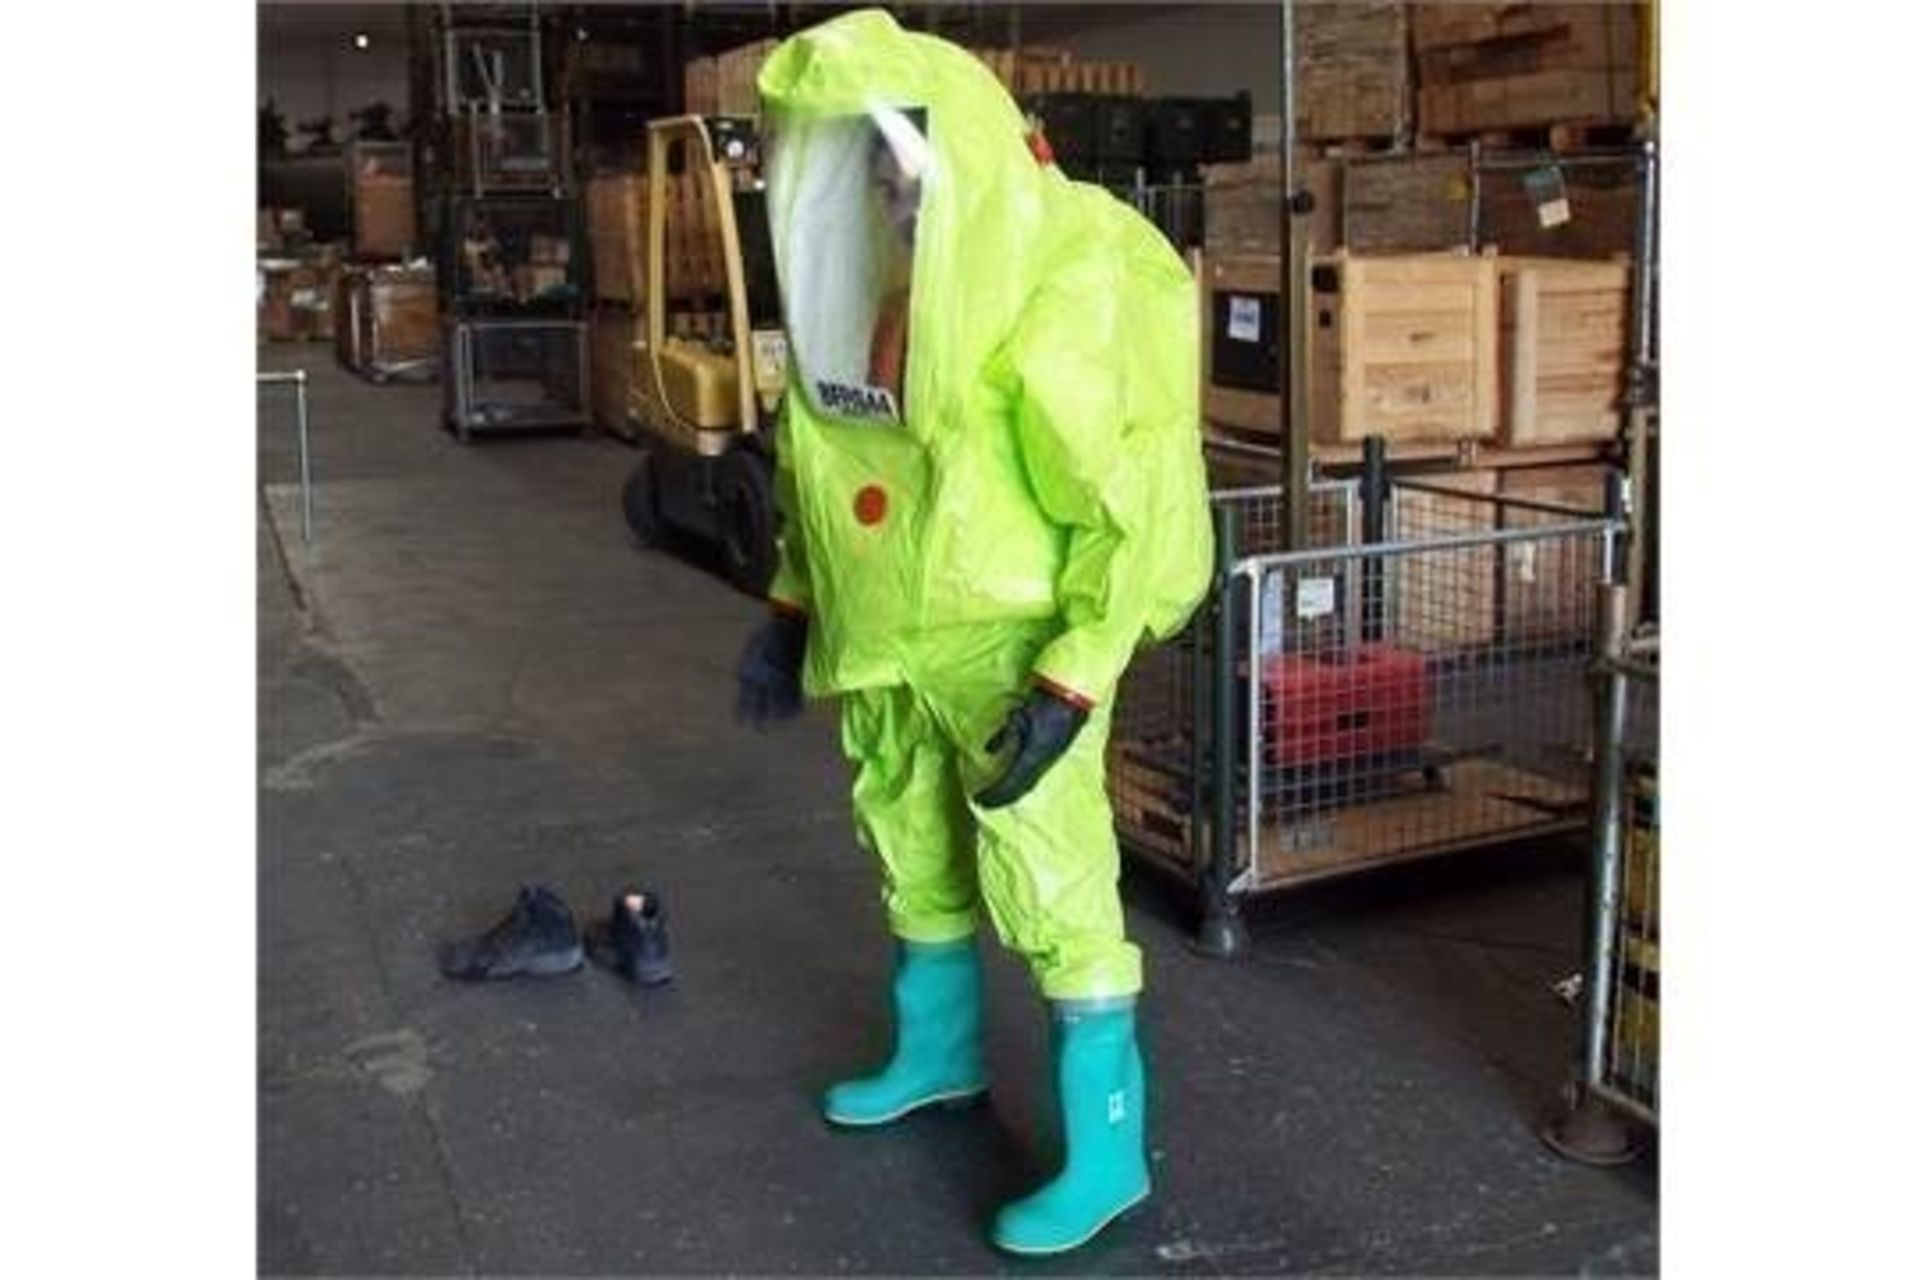 10 x Respirex Tychem TK Gas-Tight Hazmat Suit Type 1A with Attached Boots and Gloves - Image 2 of 10